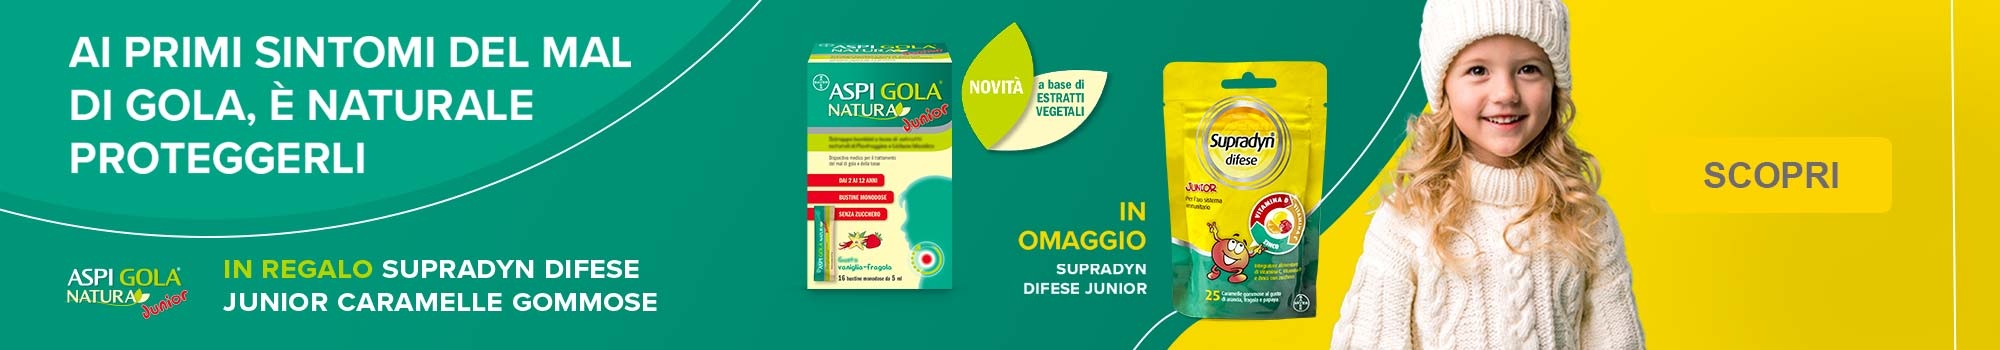 aspi gola natura junior